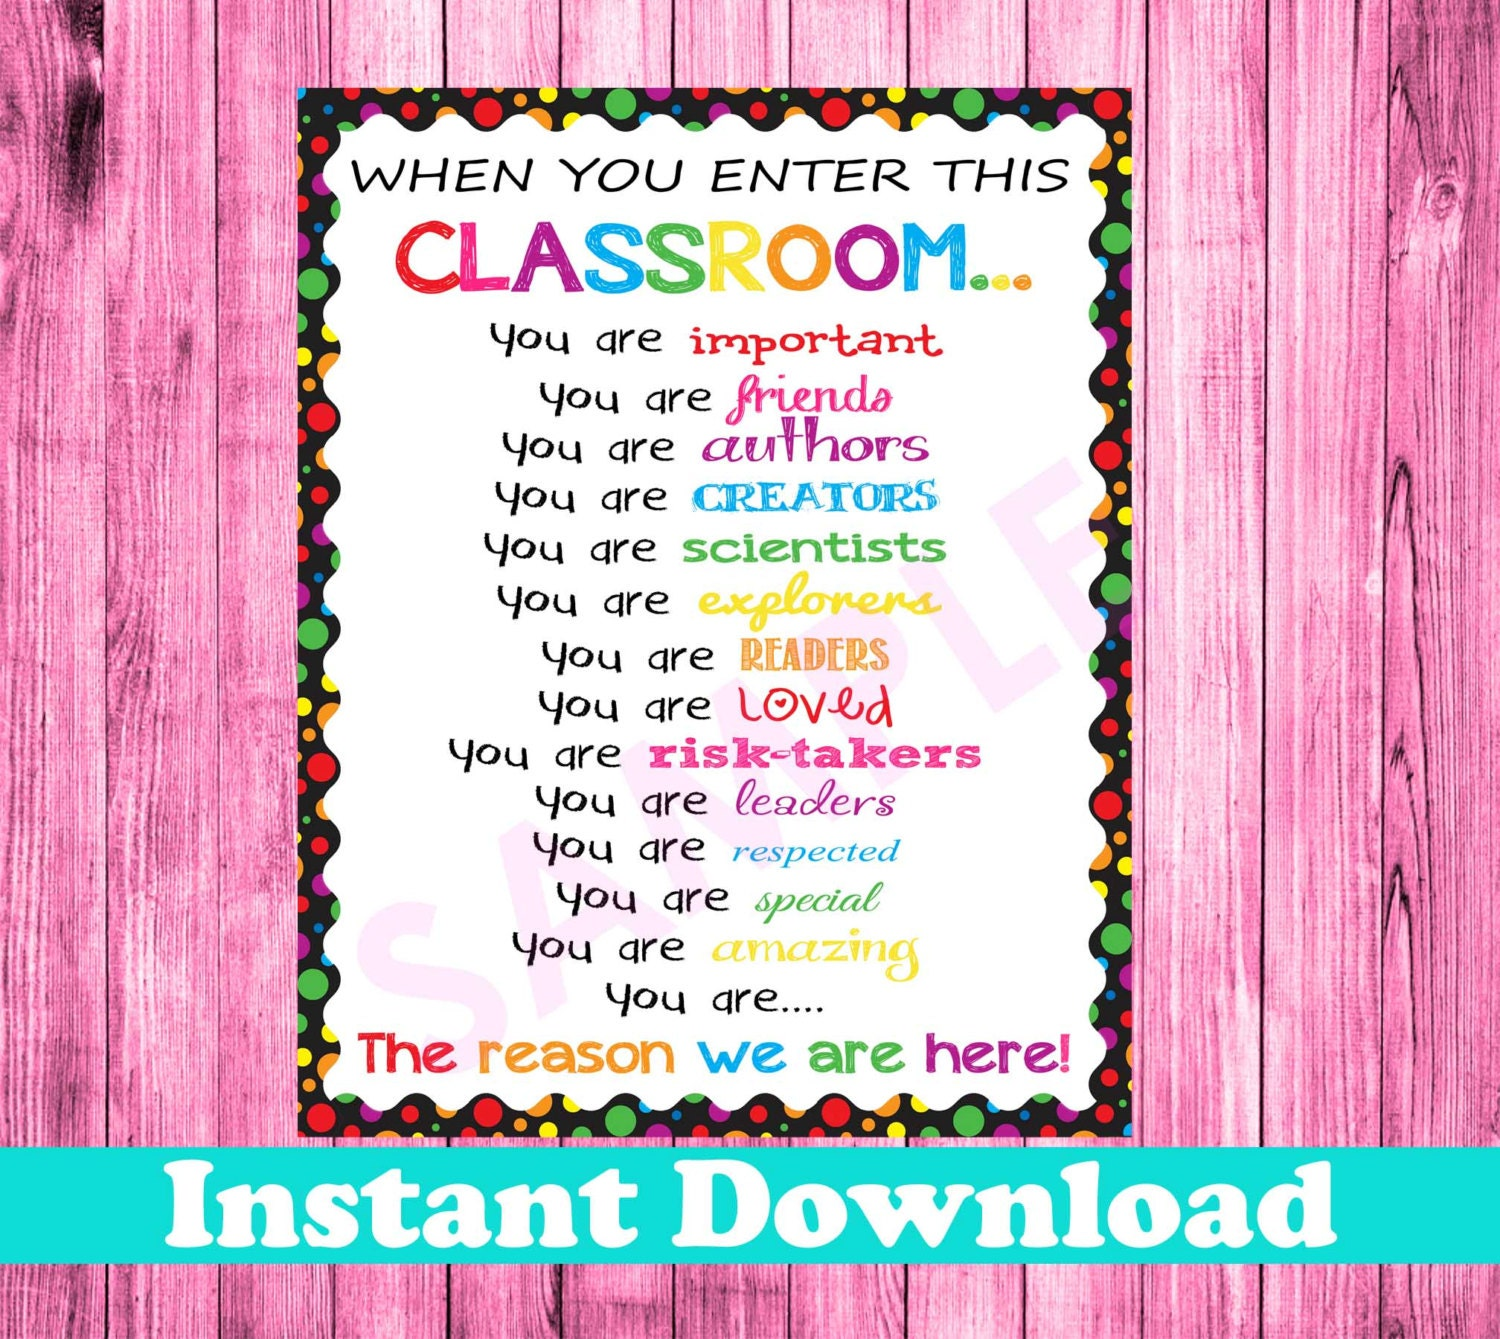 Classroom Decor Etsy ~ When you enter this classroom sign instant download